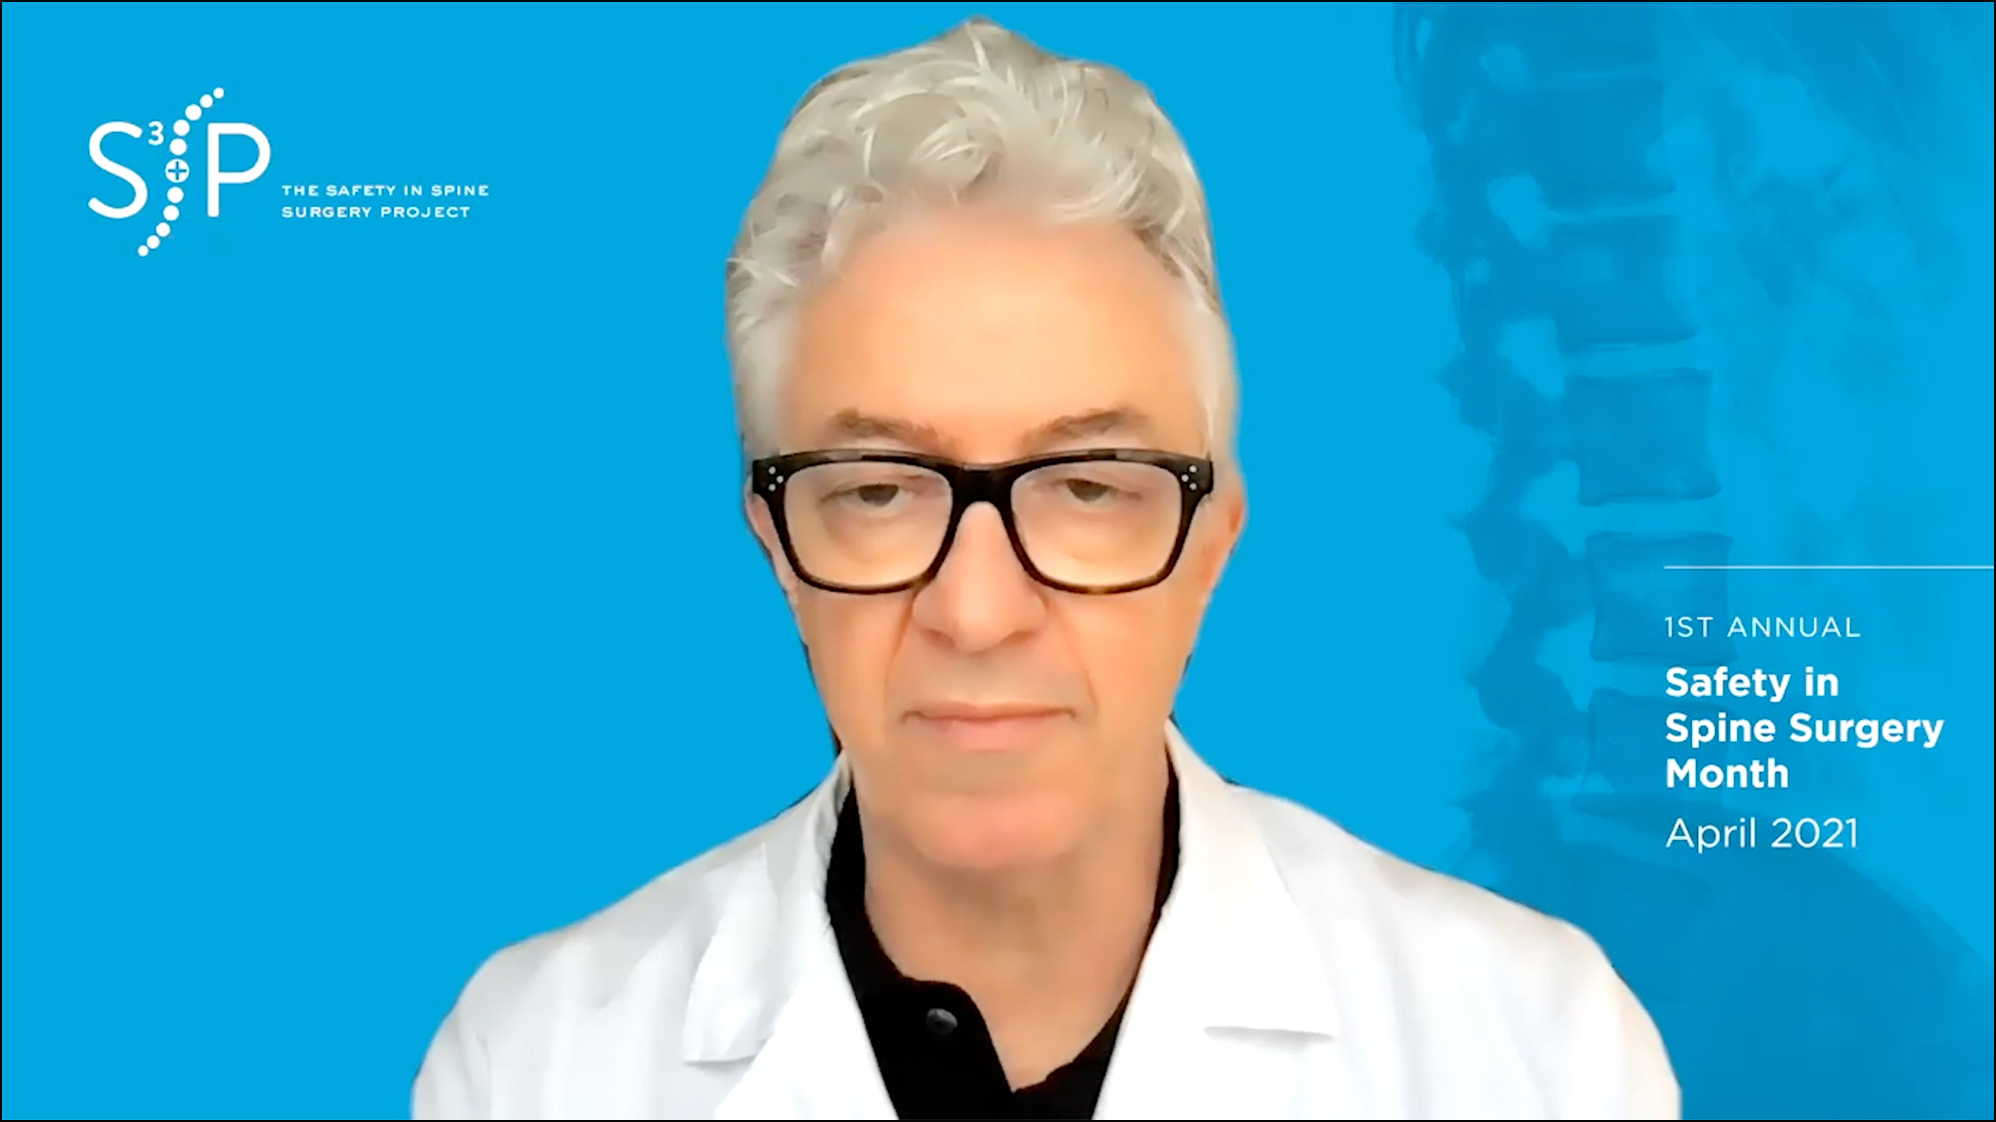 Safety in Spine Surgery Month - Balsano - Spine Surgery Safety Tips Video